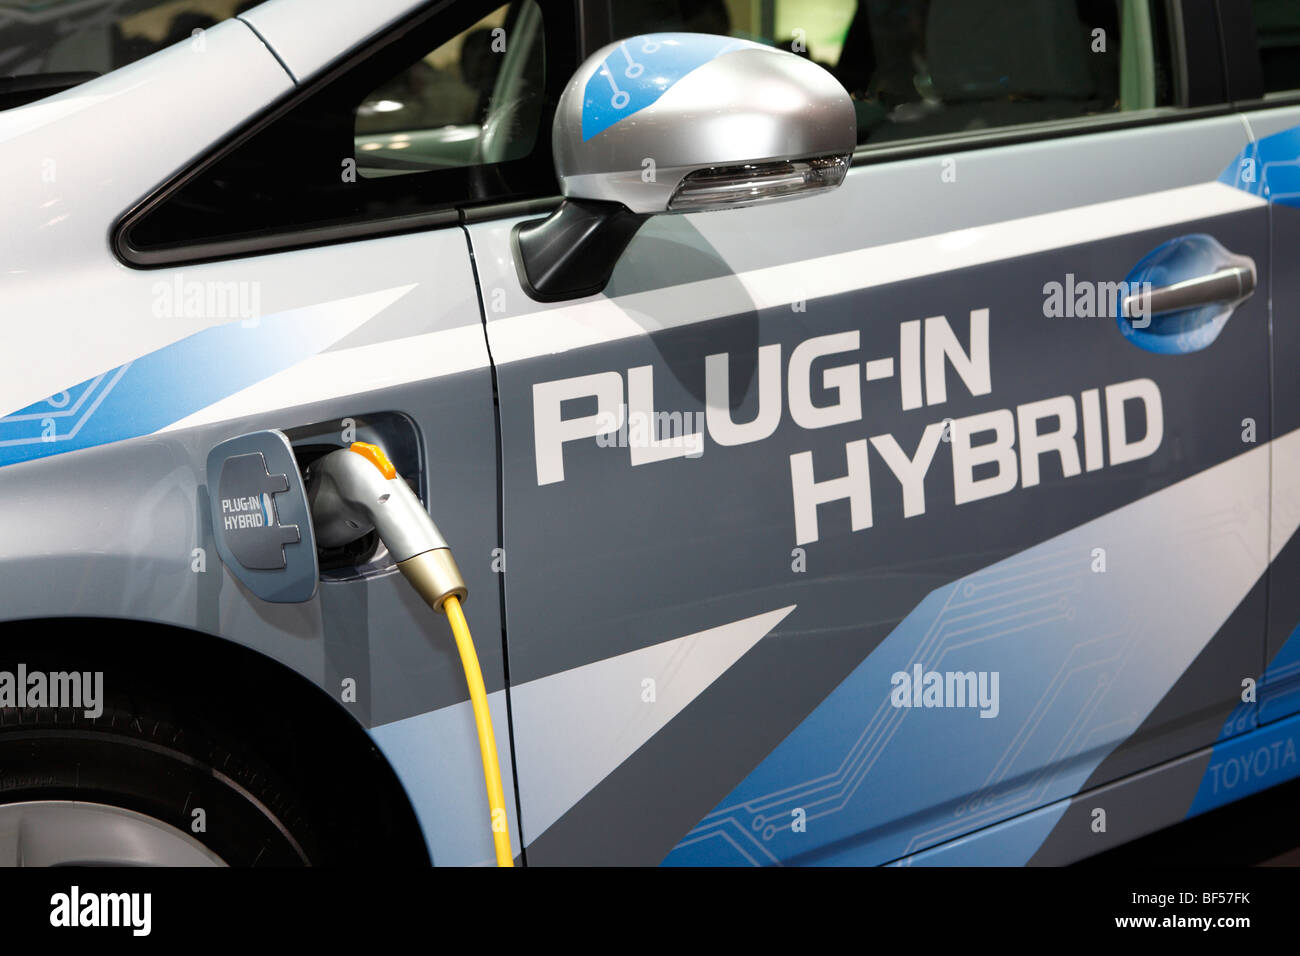 a plug in hybrid electric vehicle phev stock photo 26545895 alamy. Black Bedroom Furniture Sets. Home Design Ideas